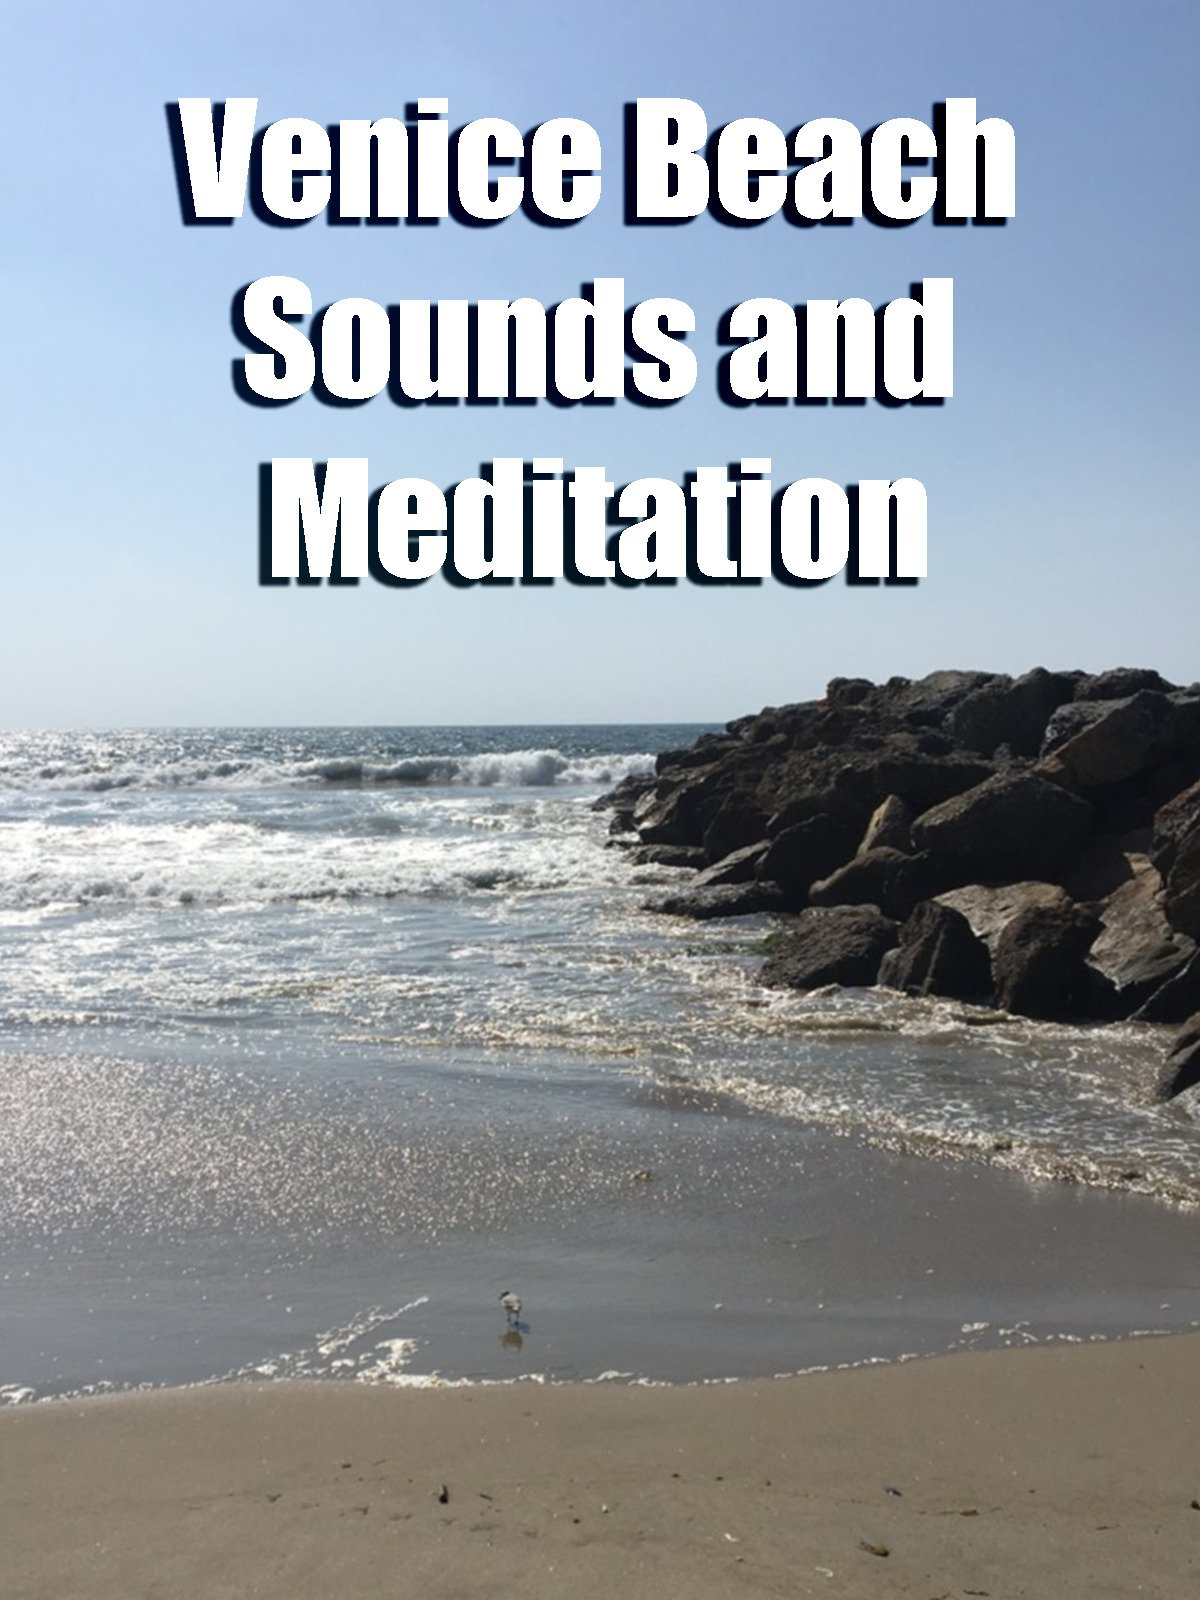 Venice Beach Sounds and Meditation